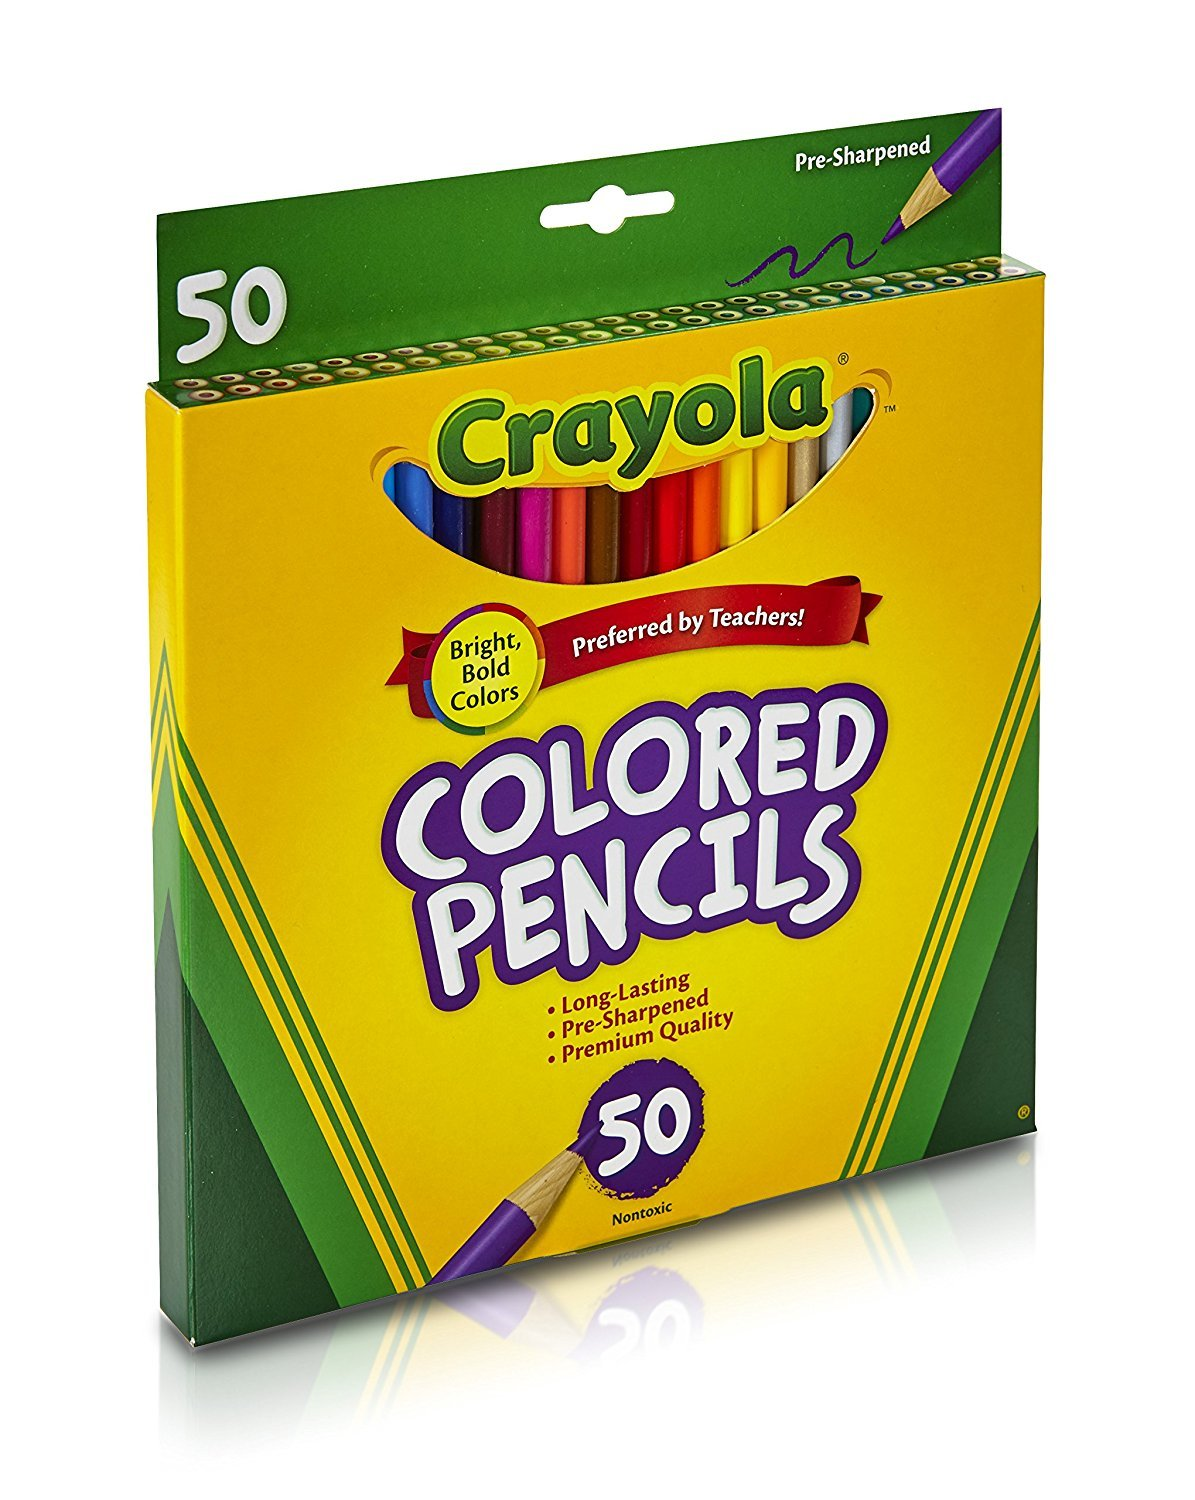 Gift Crayola 100Count Colored Pencils with 16Count Color Fx Metallic /& Neon Exclusive Great For Coloring Books